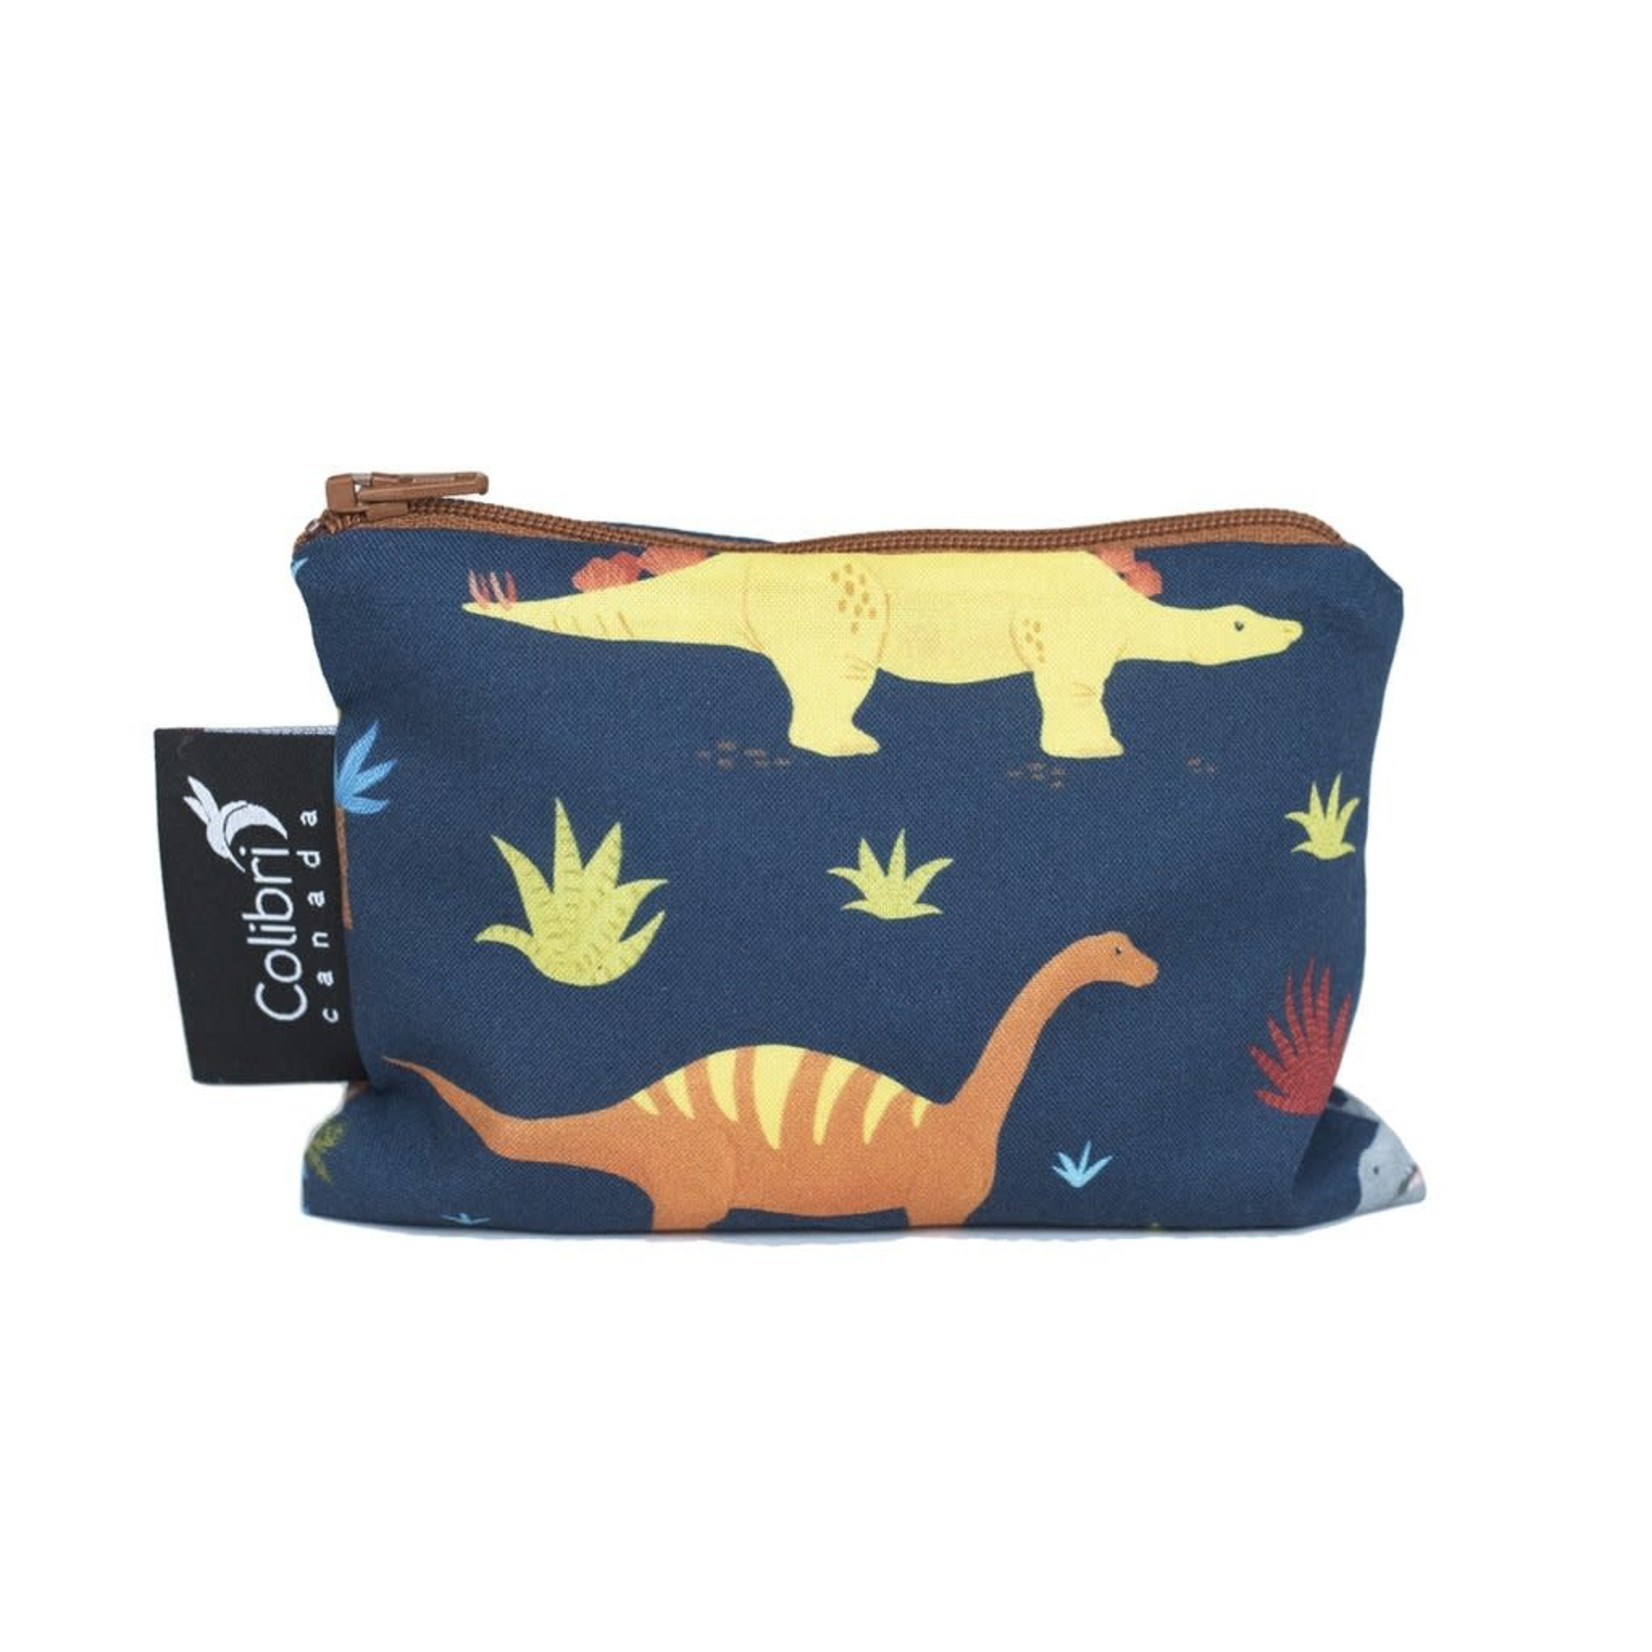 REUSABLE SNACK BAGS - DINOSAURS